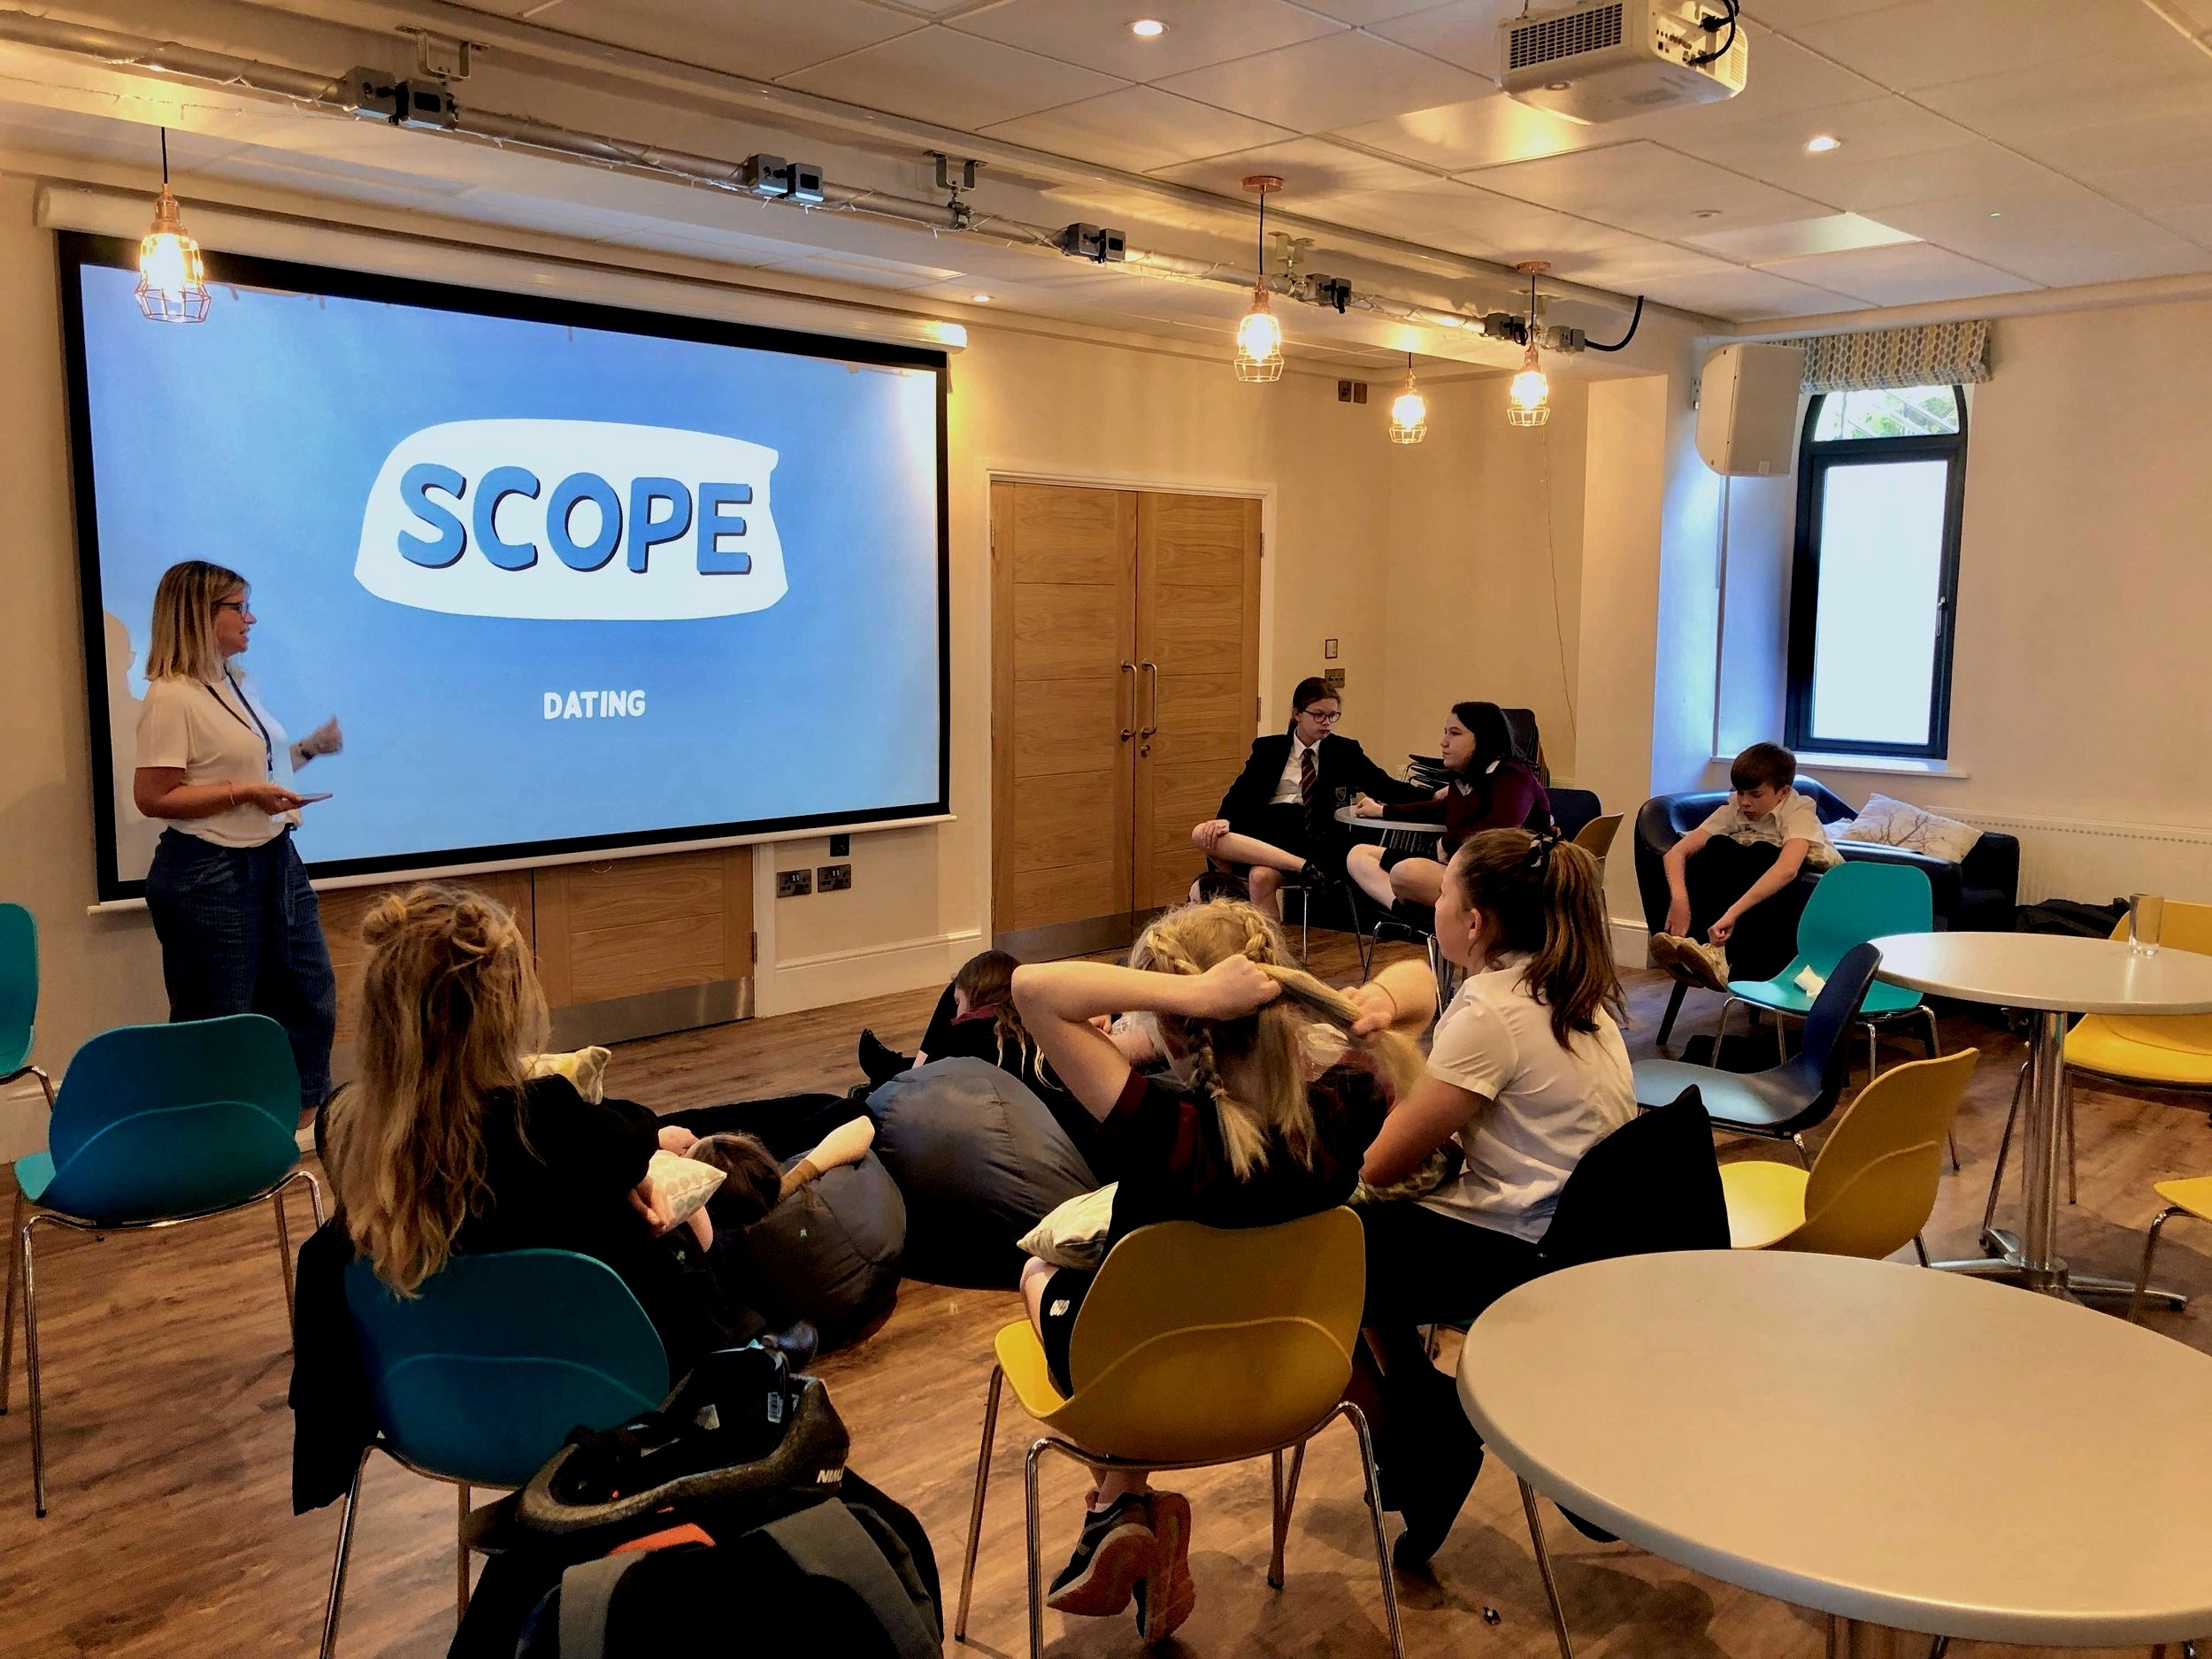 Scope - Thought provoking workshops